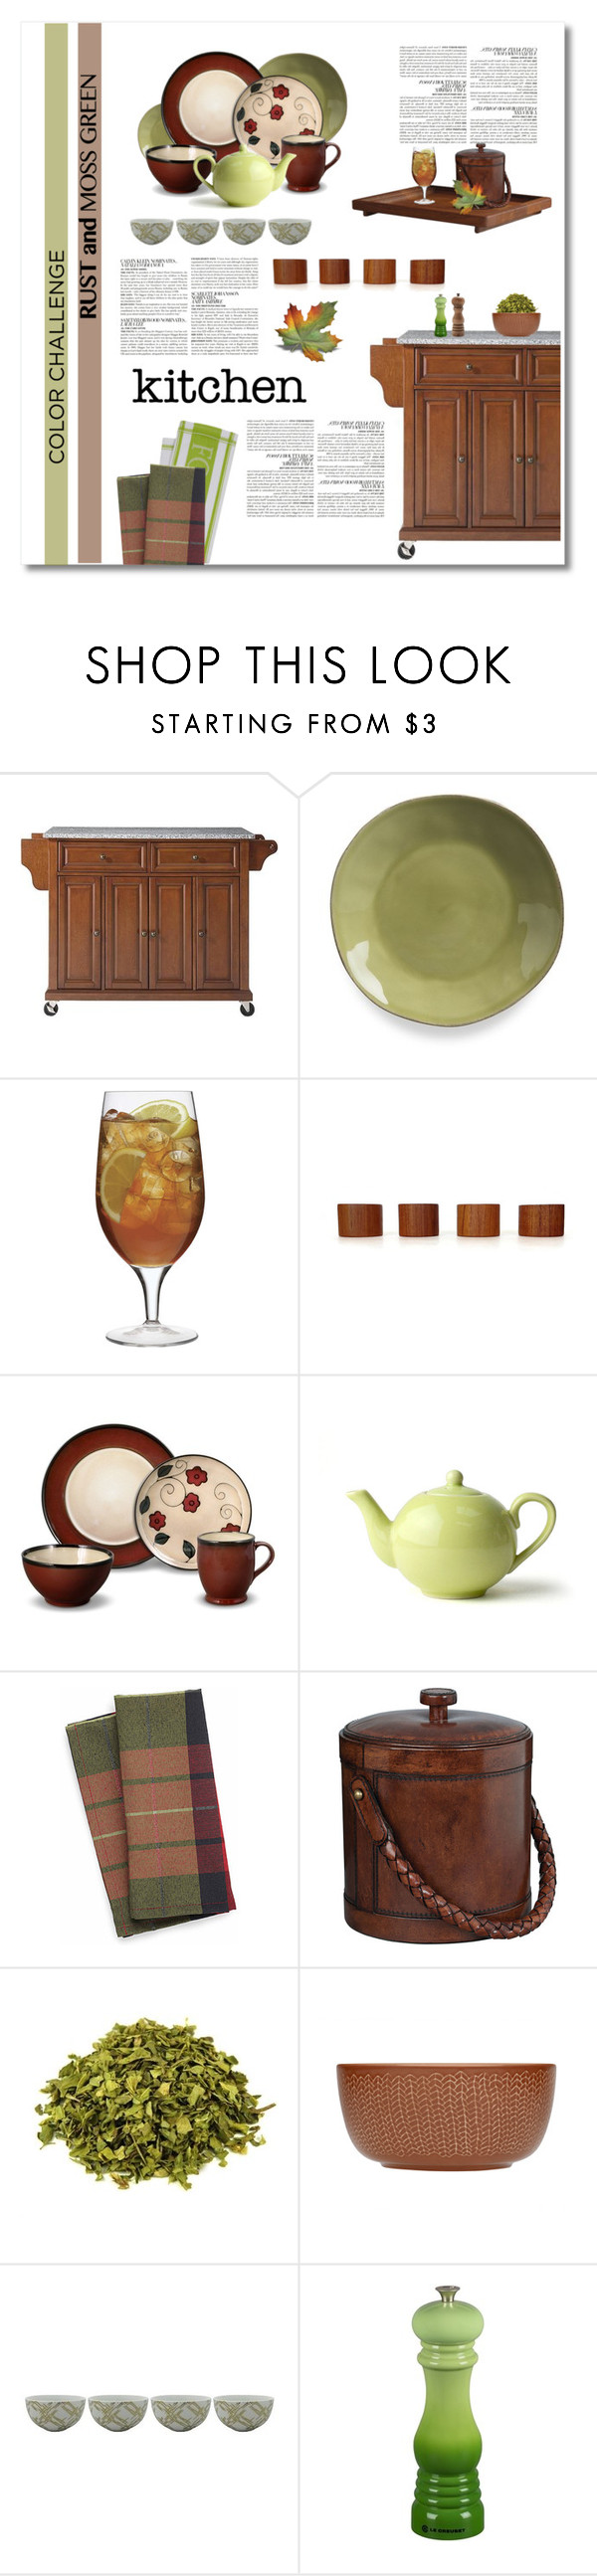 """""""color challenge : moss green and rust"""" by limass ❤ liked on Polyvore featuring interior, interiors, interior design, home, home decor, interior decorating, McGinn, Home Decorators Collection, Crate and Barrel and Luigi Bormioli"""